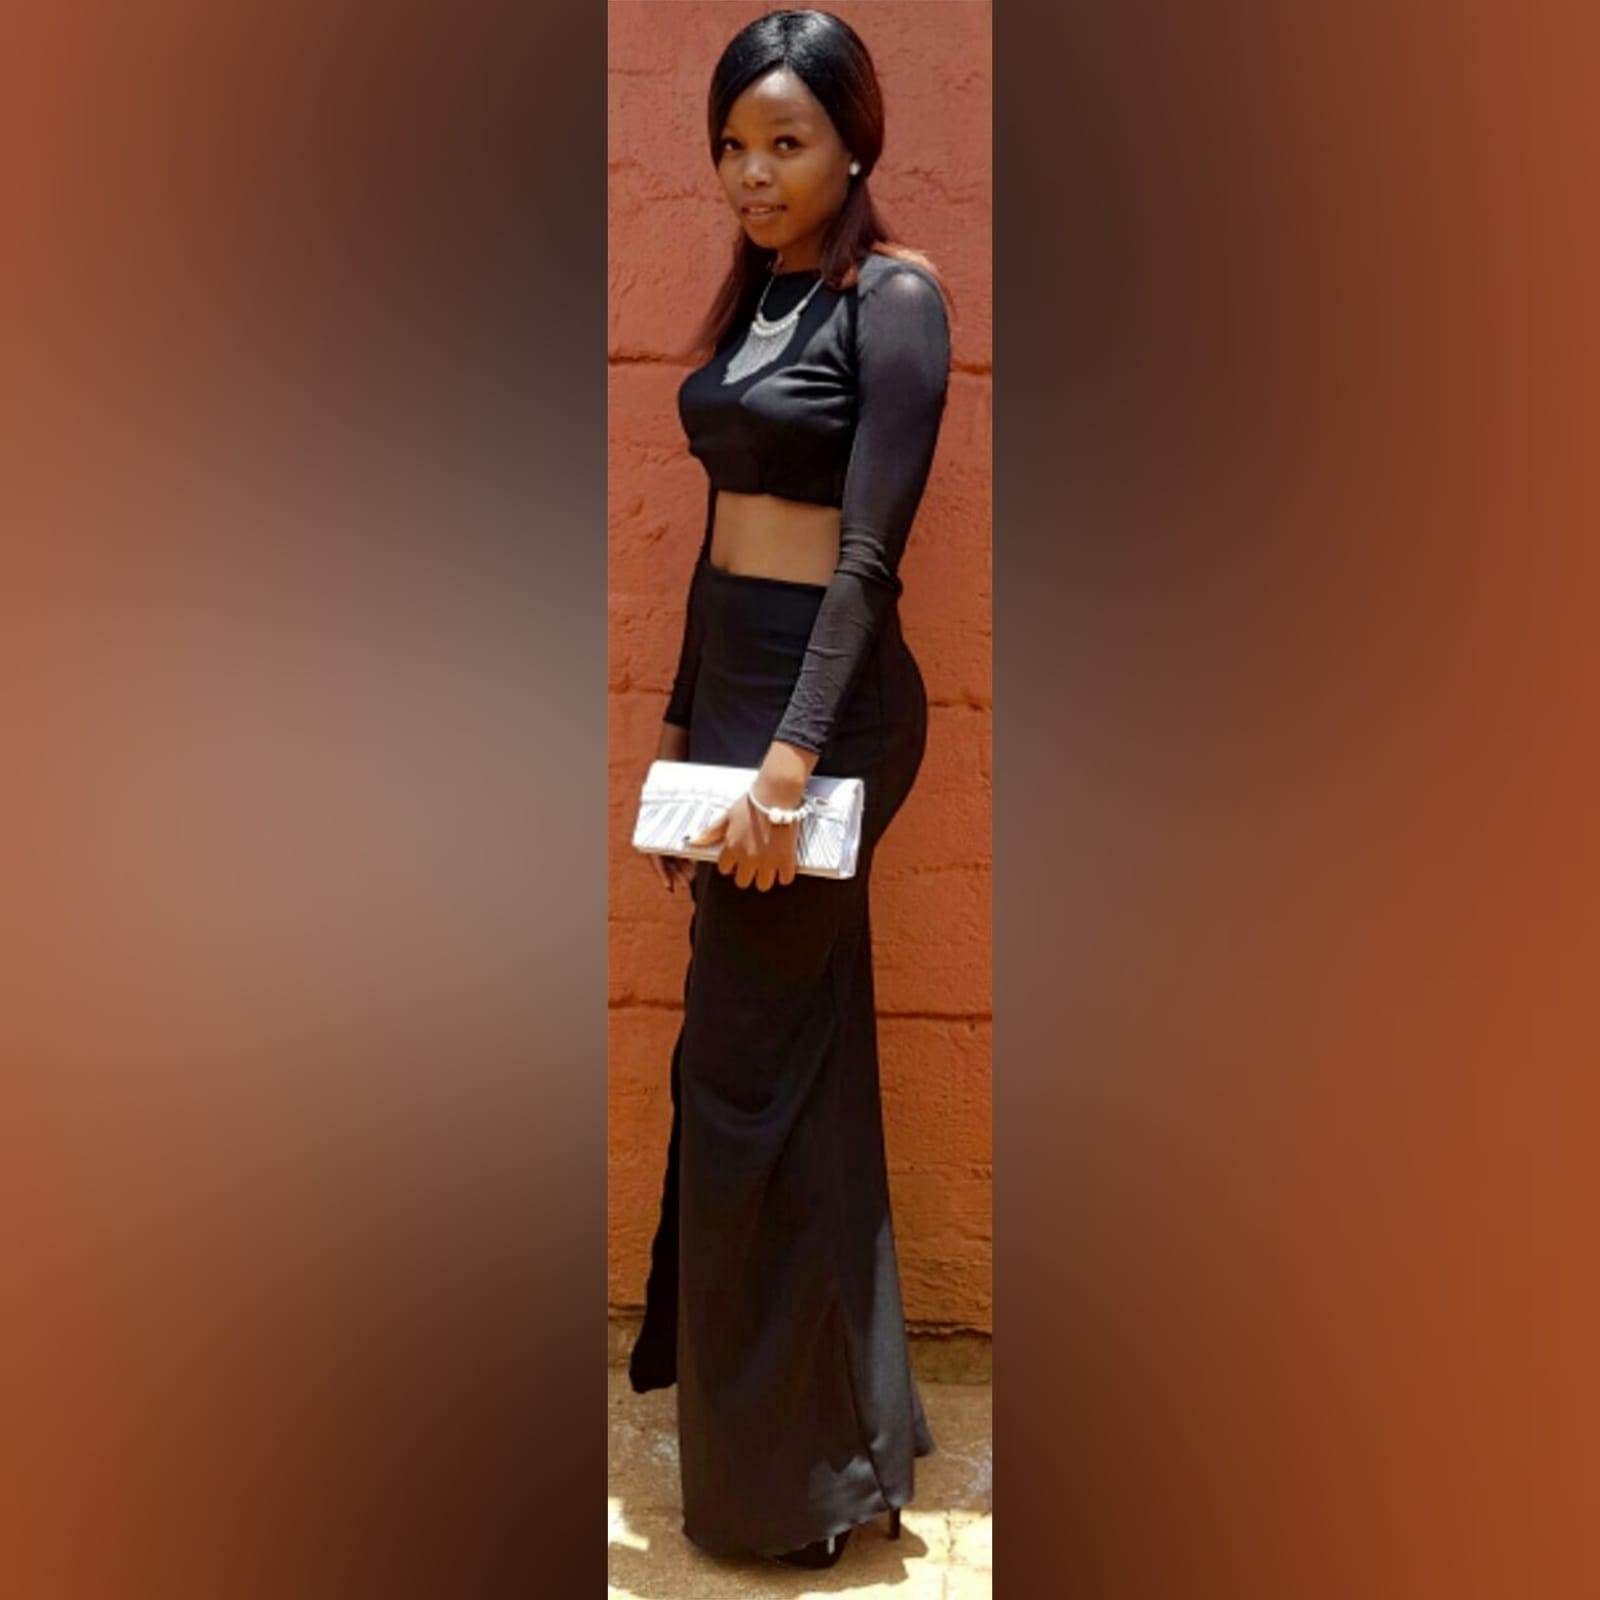 Black 2 piece smart casual dress 2 black 2 piece smart casual dress, with a crop top with long mesh sleeves, with a pencil long skirt with a slit